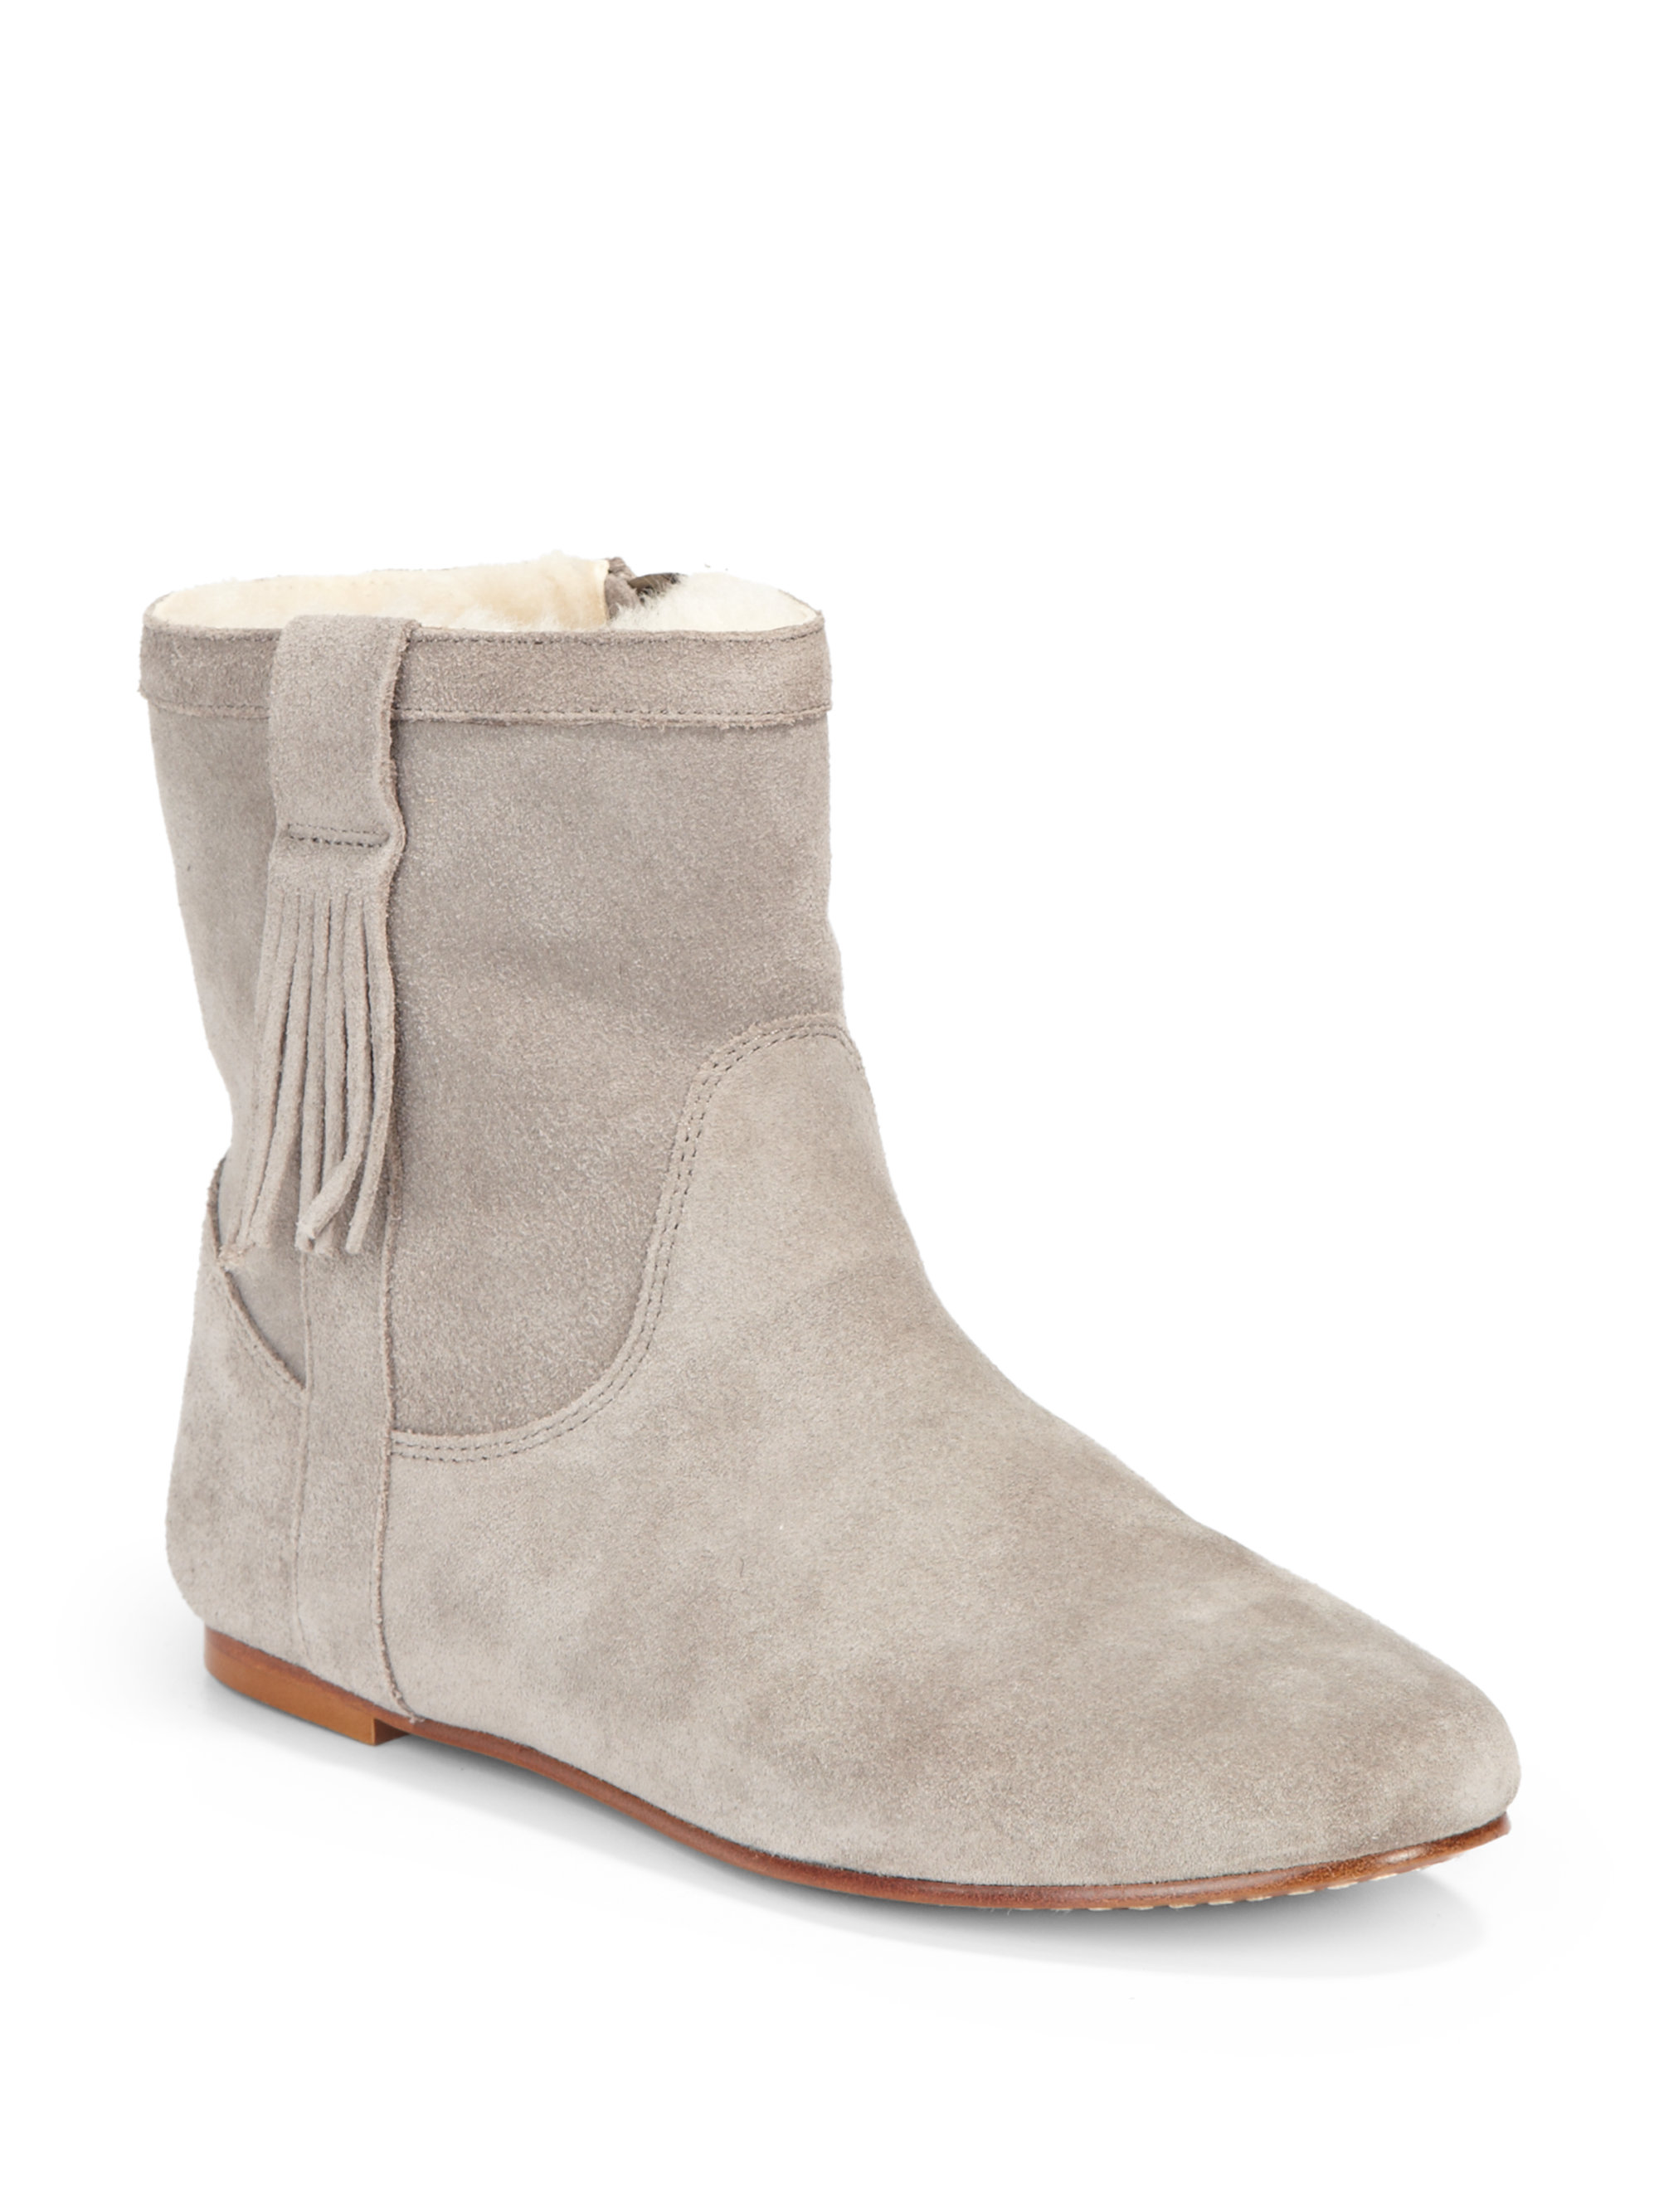 Joie Moondance Suede Flat Ankle Boots in Gray | Lyst